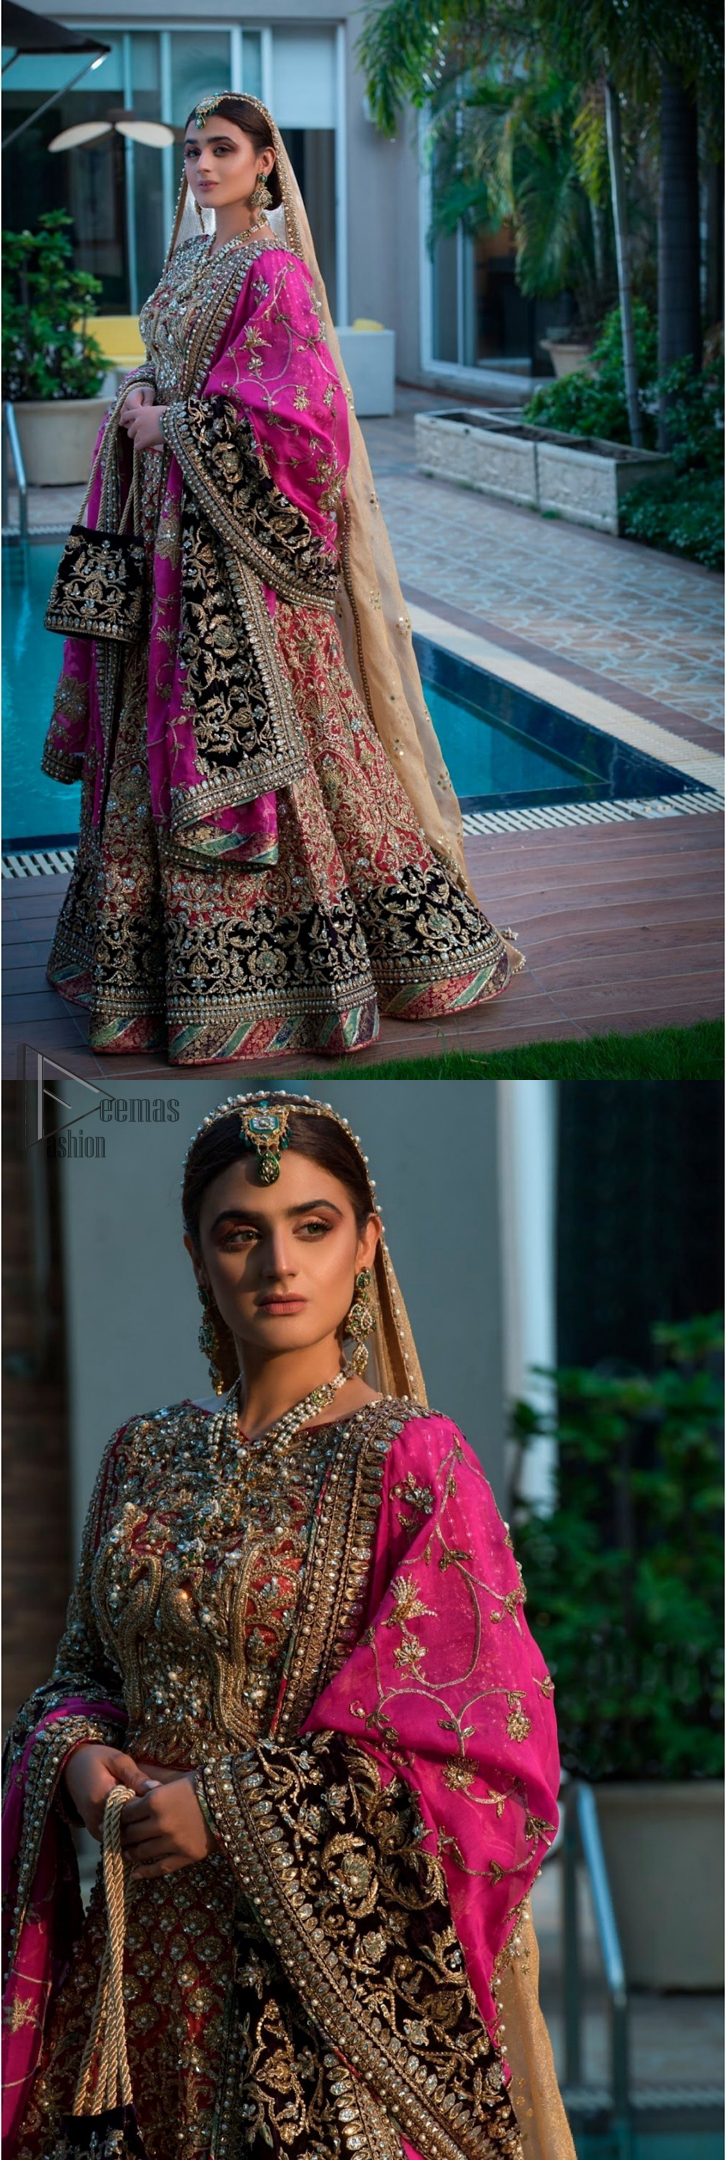 Complete your big day with the perfect dress in our selection of stunning wedding dresses. This regal lehenga blouse is an immensely captivating traditional piece, enhancing the art of classical heritage showcasing the craftsmanship of kora, dabka, tilla and sequibs detailed with pearls, artistically embellished to give a beautiful rhythm to the outfit. The lehenga is adorned with golden and antique shaded embroidery. Furthermore the bottom of the lehenga is enhanced with black embellished applique. Coordinated with beige dupatta sprinkled with sequins all over.